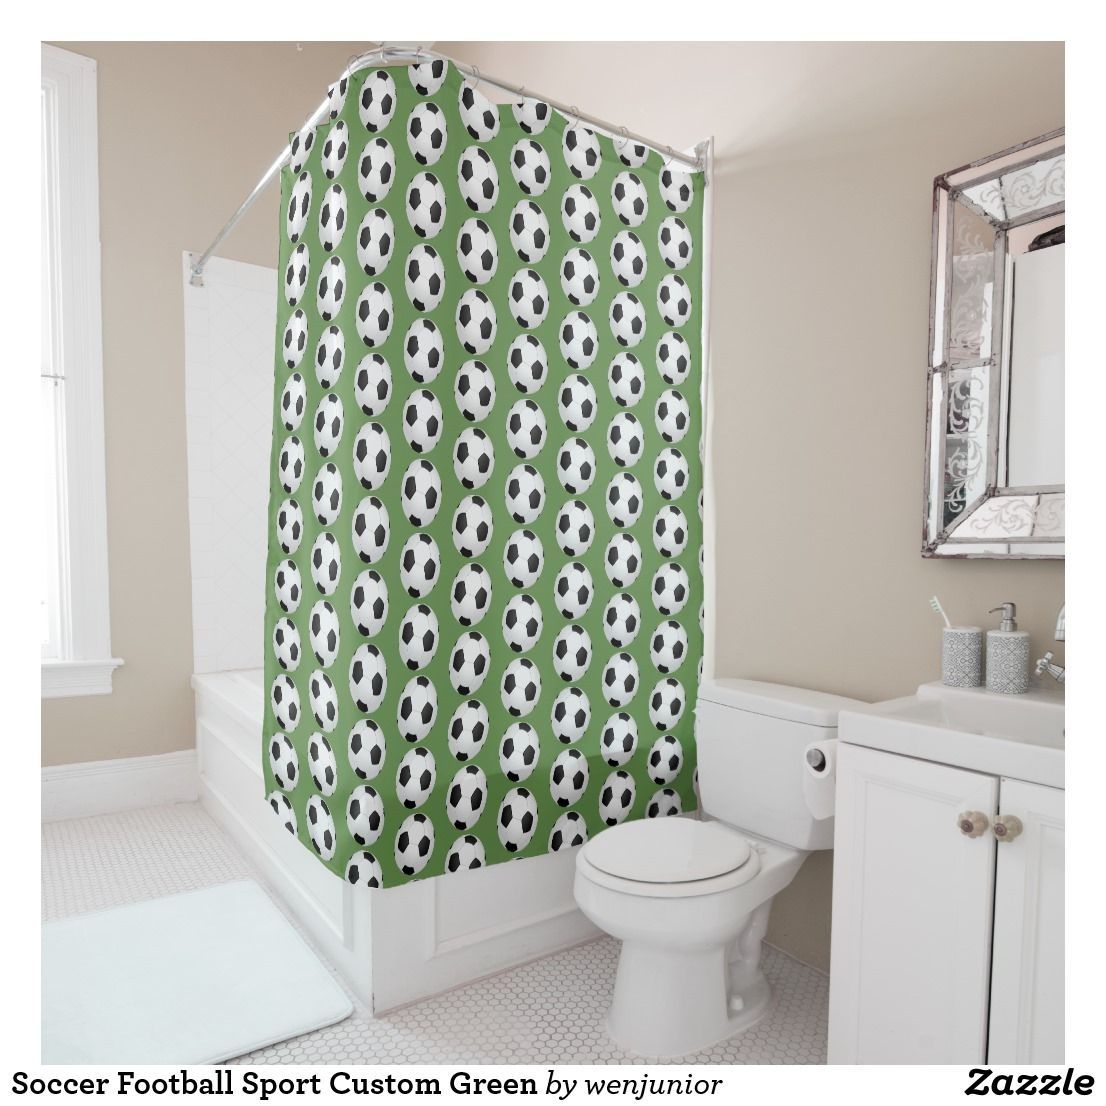 Soccer Football Sport Custom Green Shower Curtain Zazzle Com